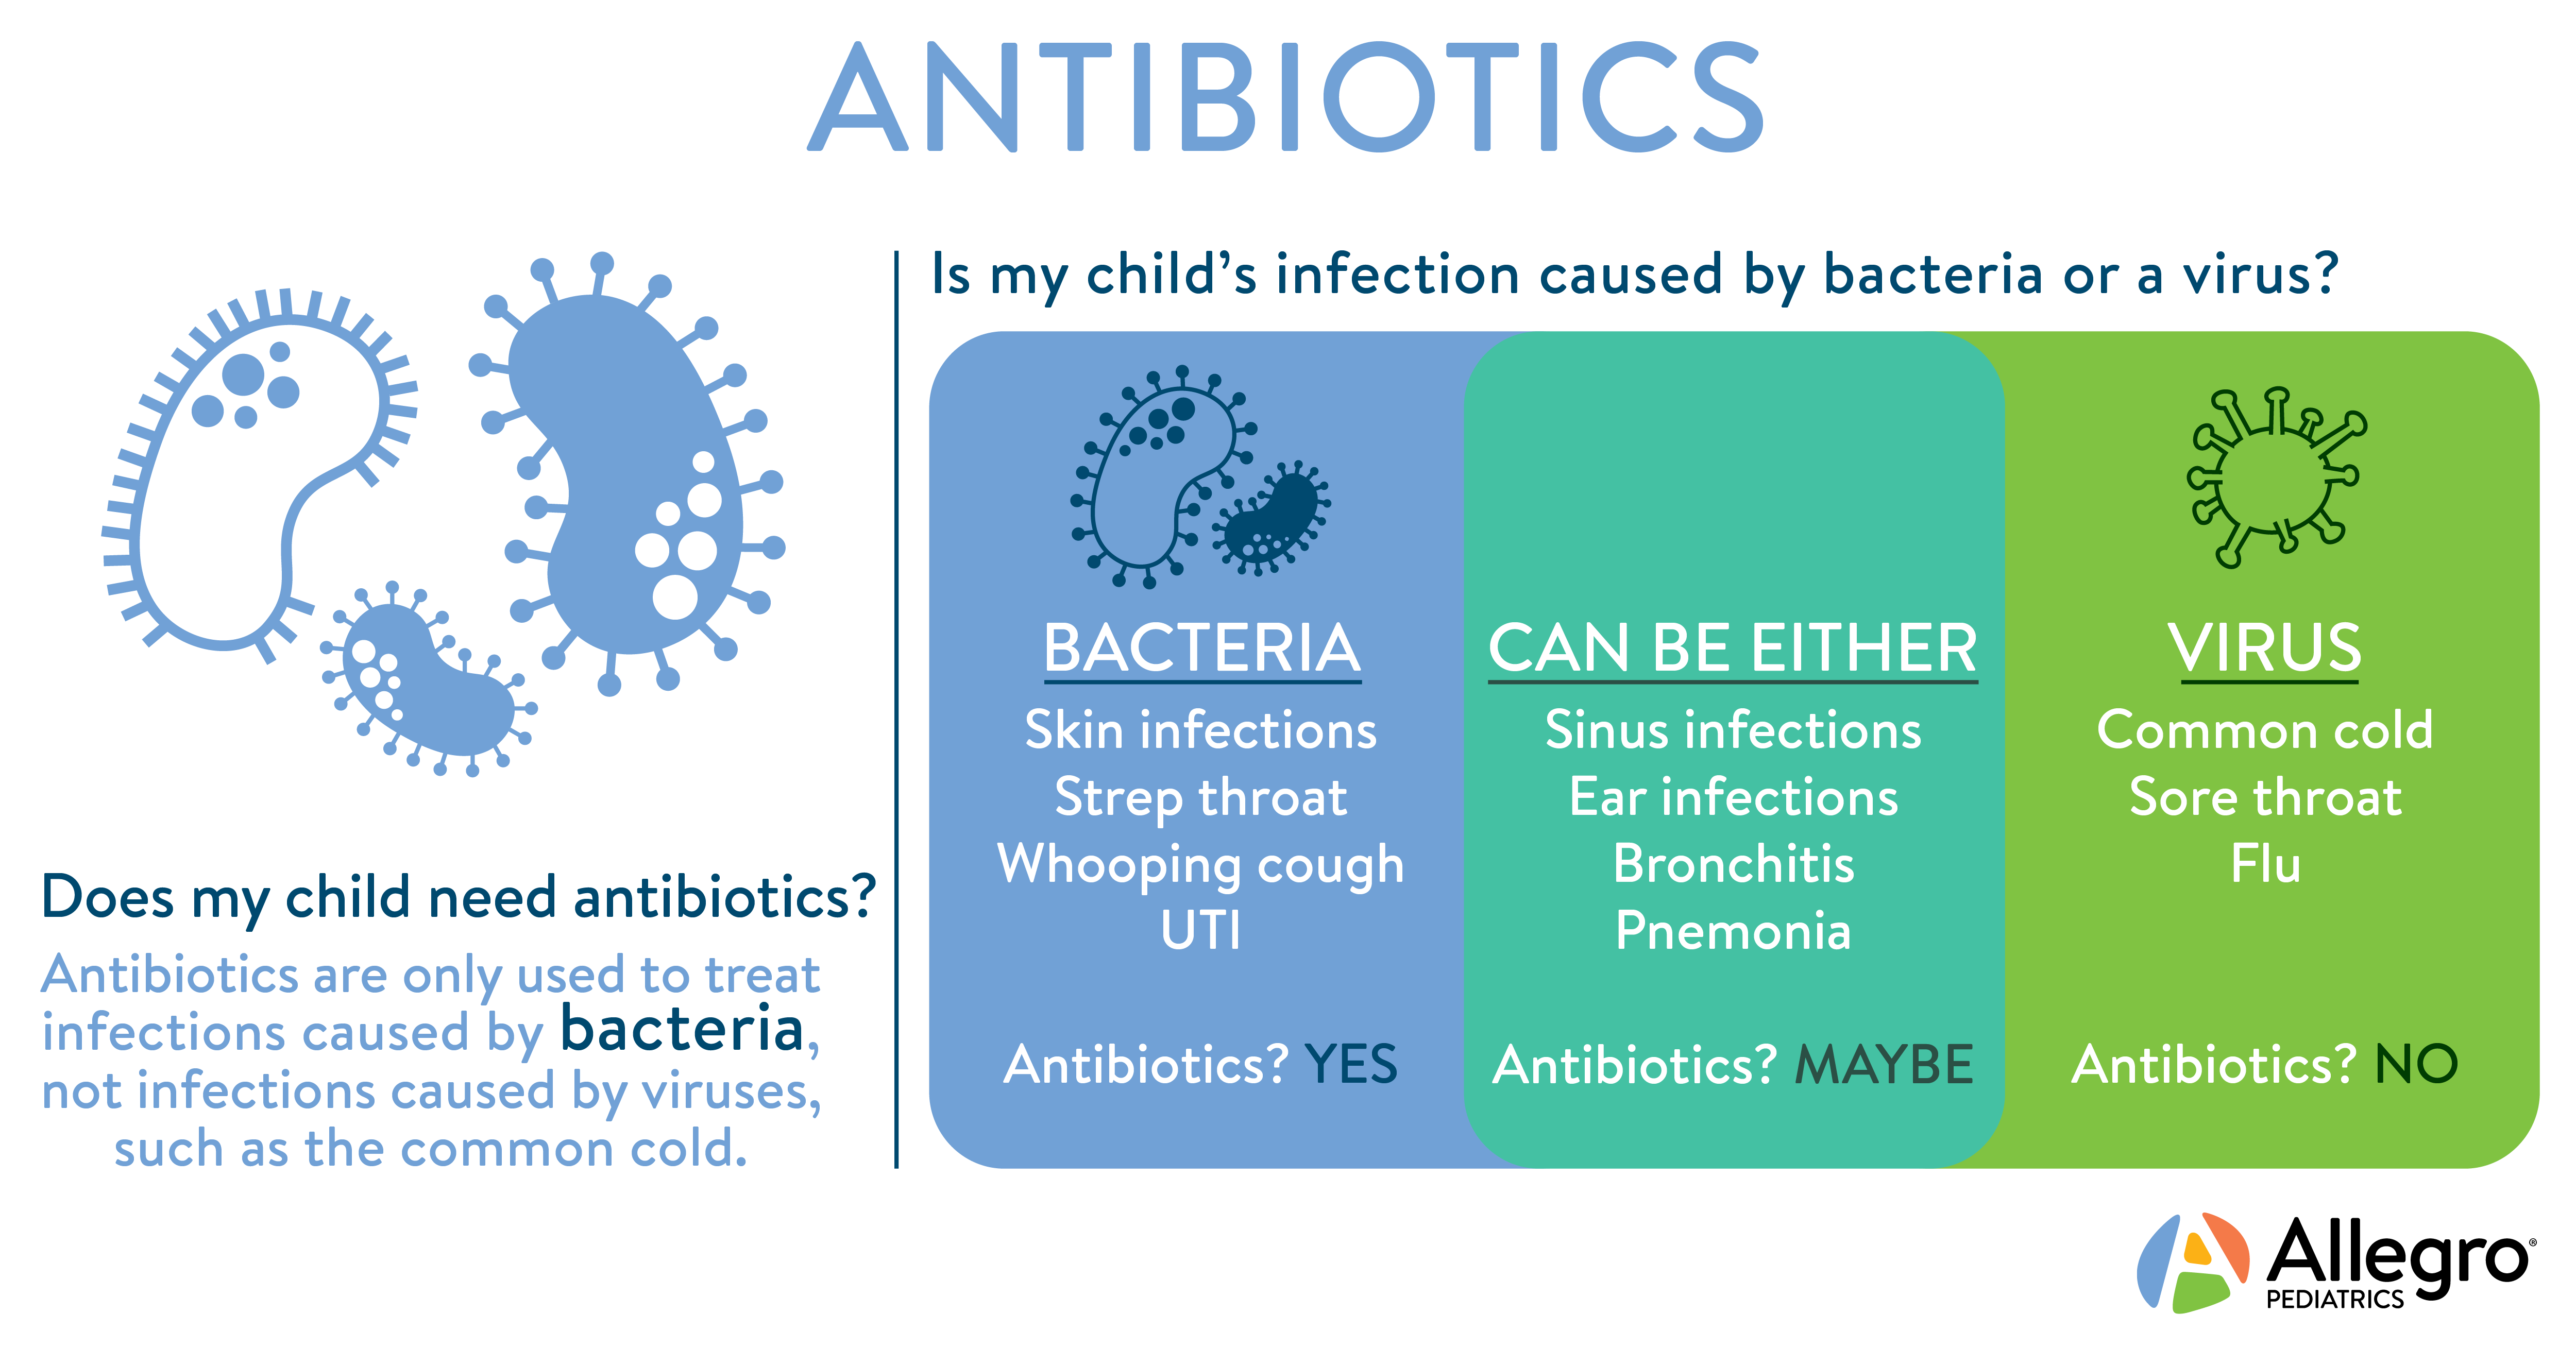 antibiotic-infographic.png